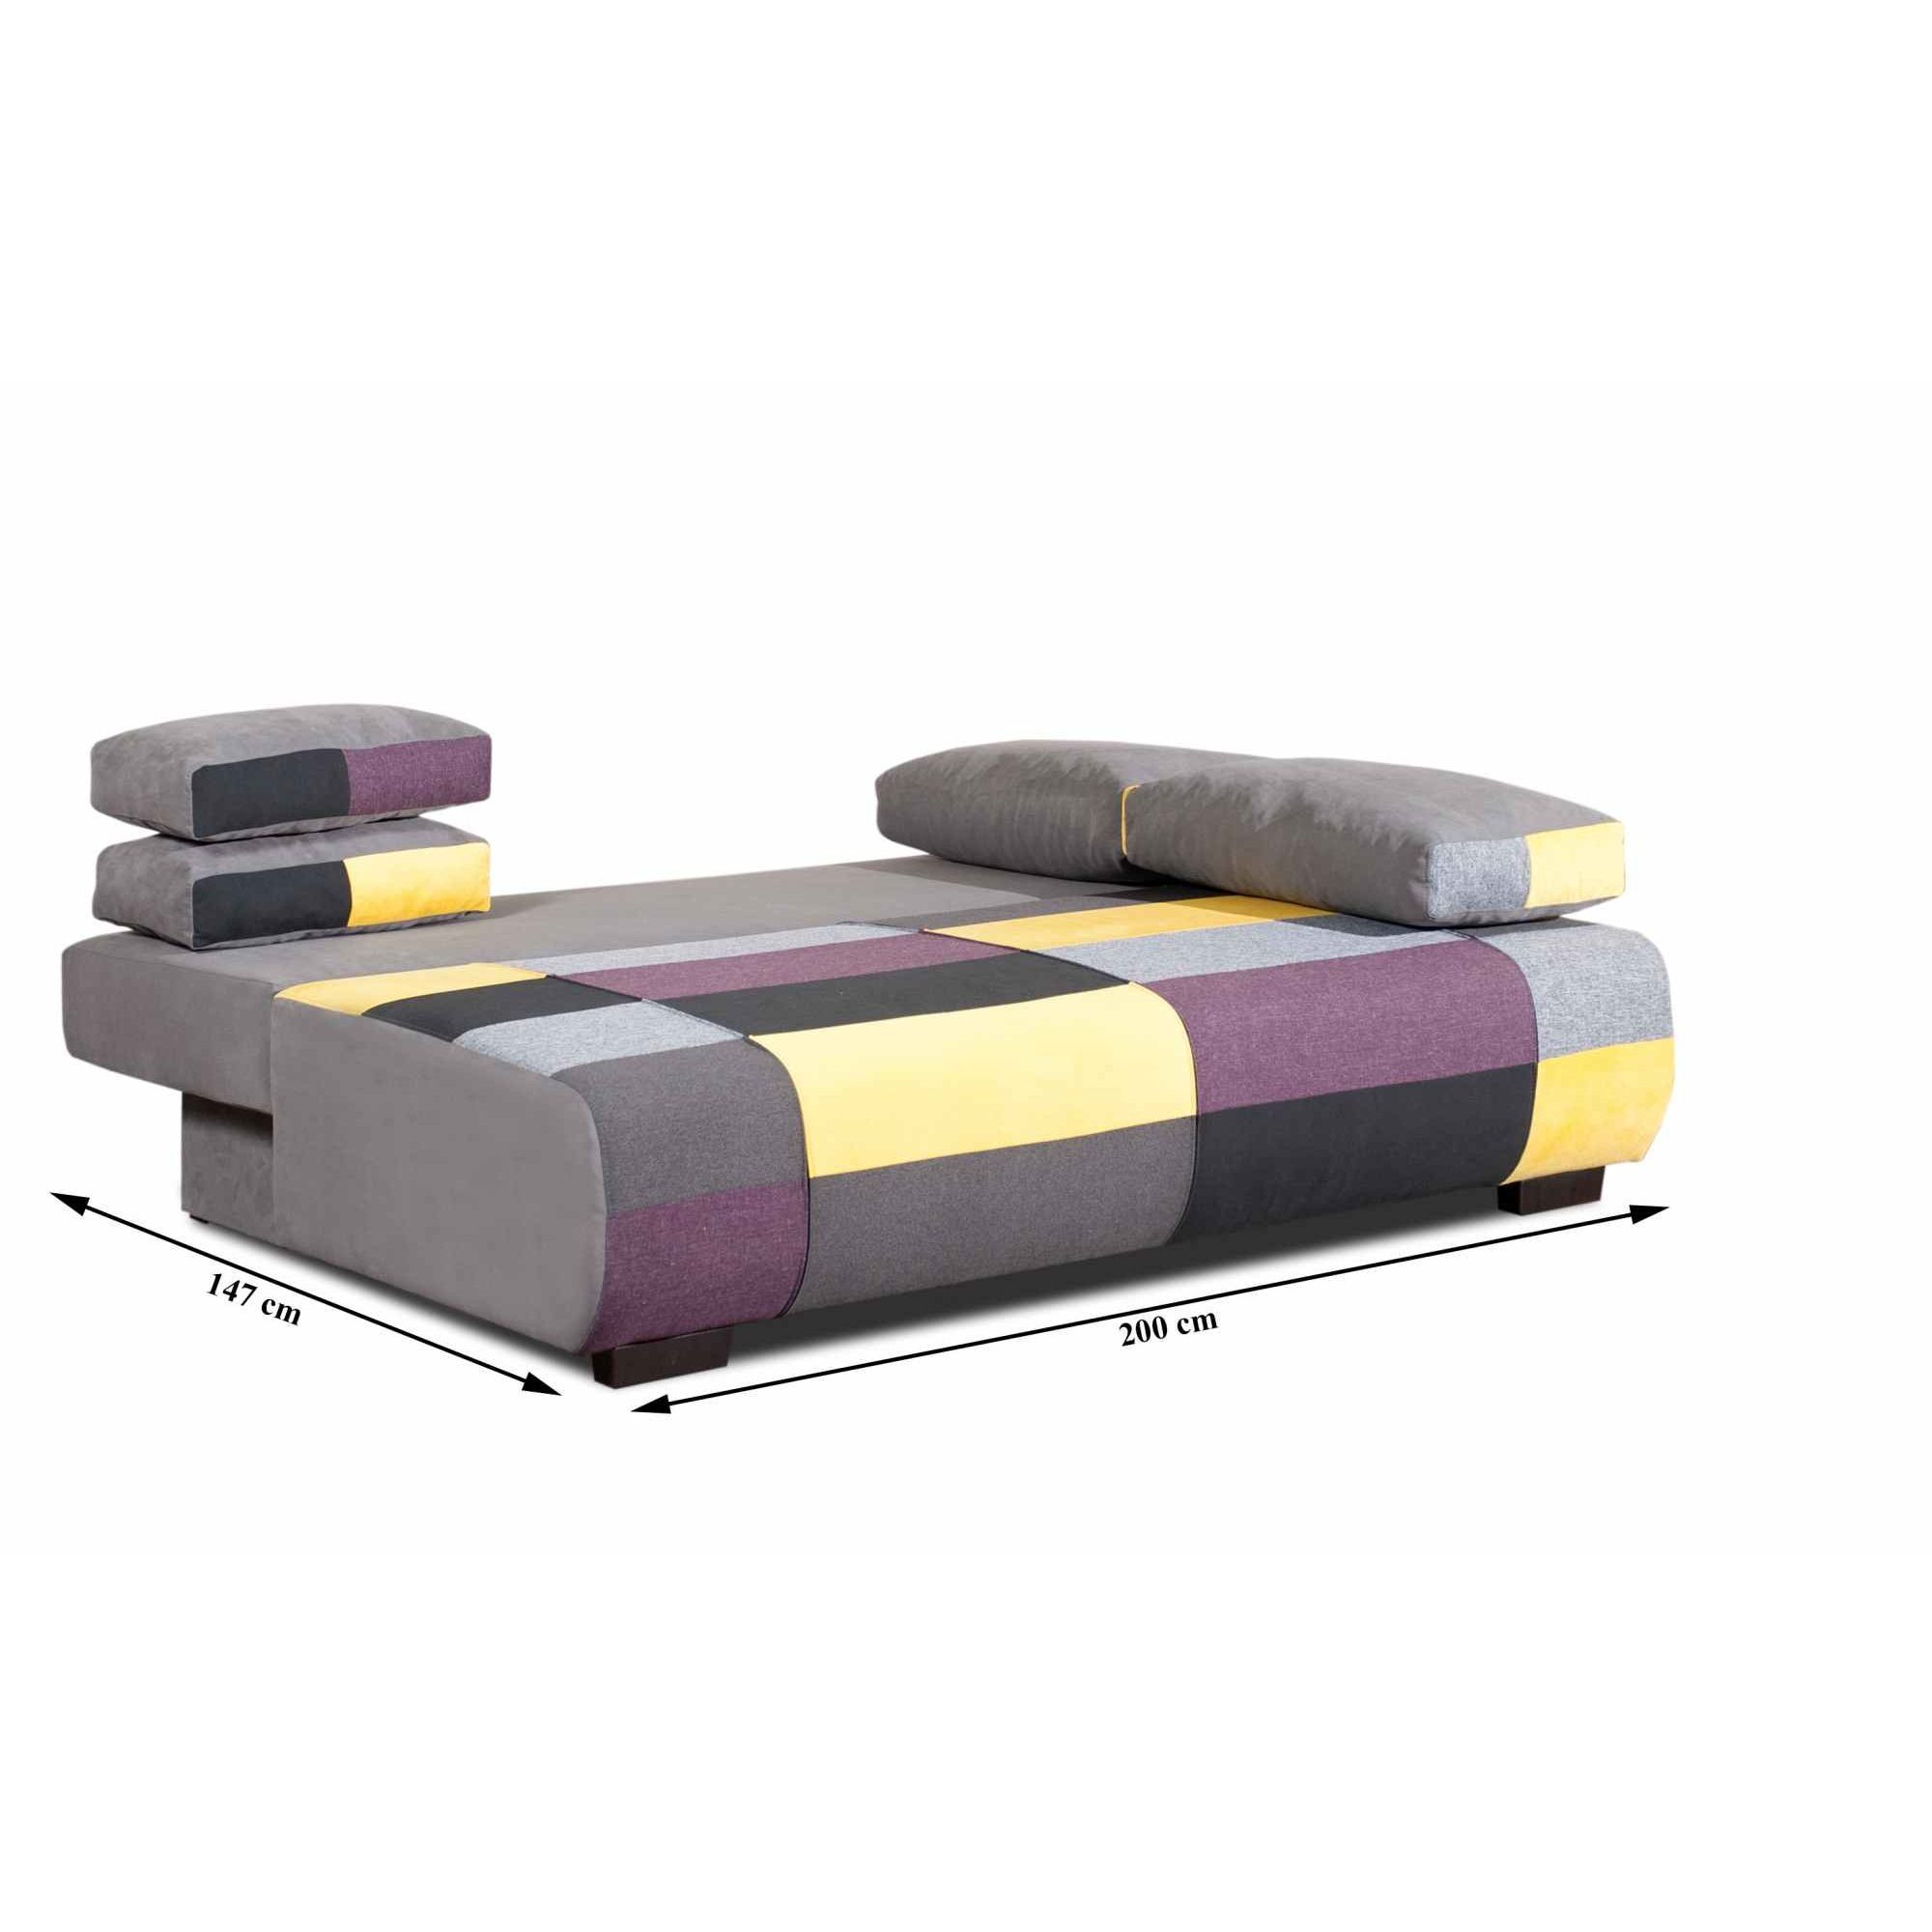 deco in paris canape 3 places convertible en tissu jaune malte malte jaune. Black Bedroom Furniture Sets. Home Design Ideas